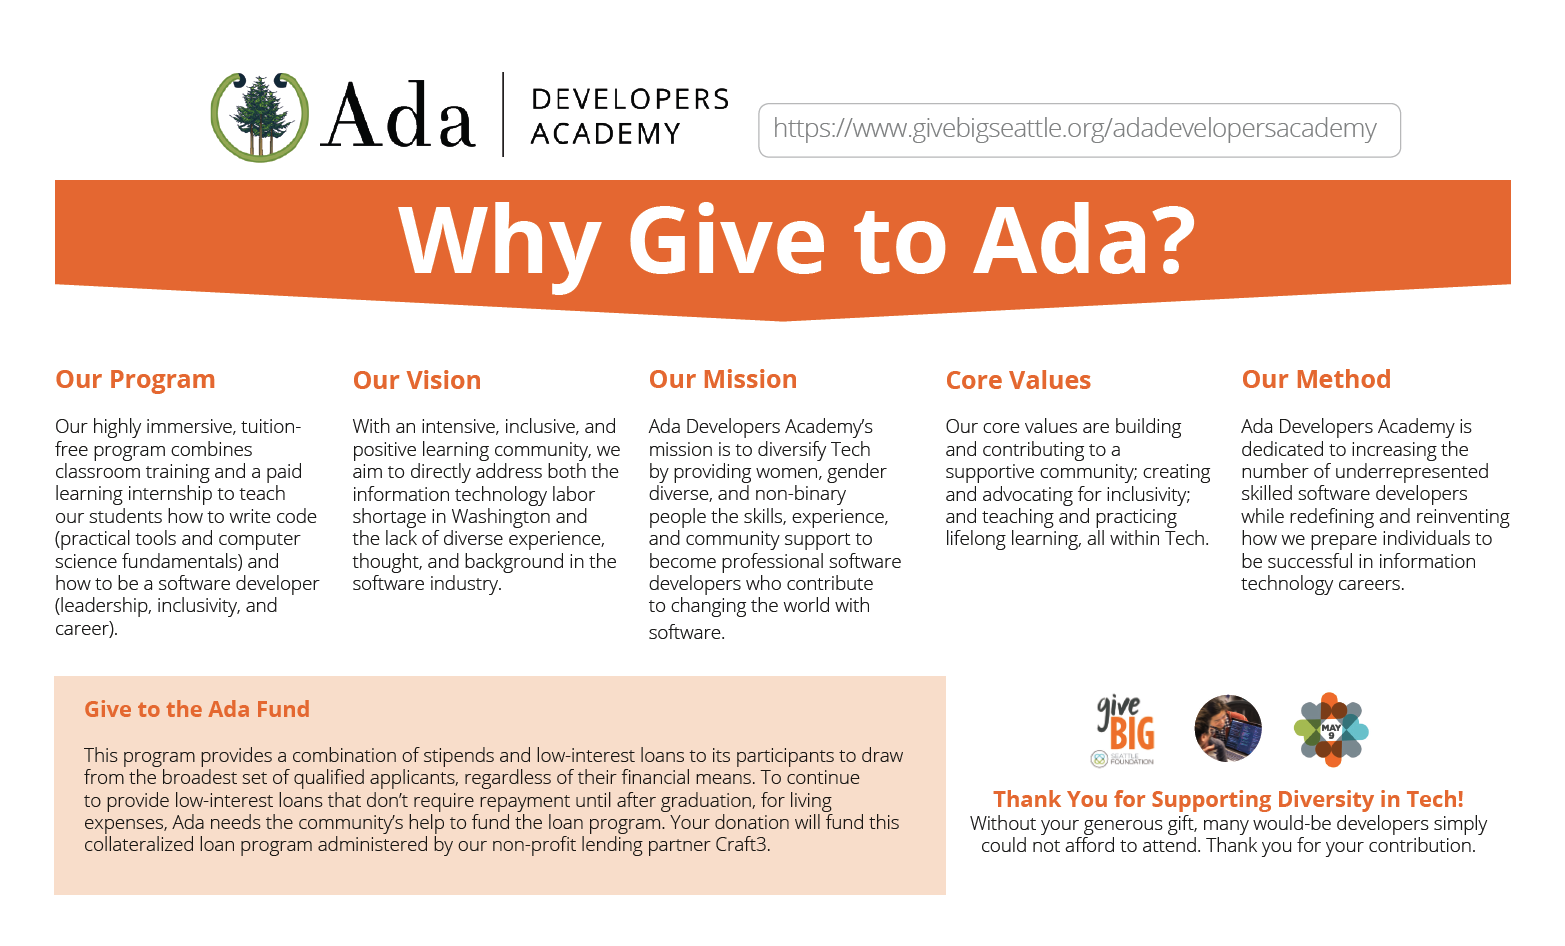 ADA-Tabloid-Poster-GiveBIG-2018